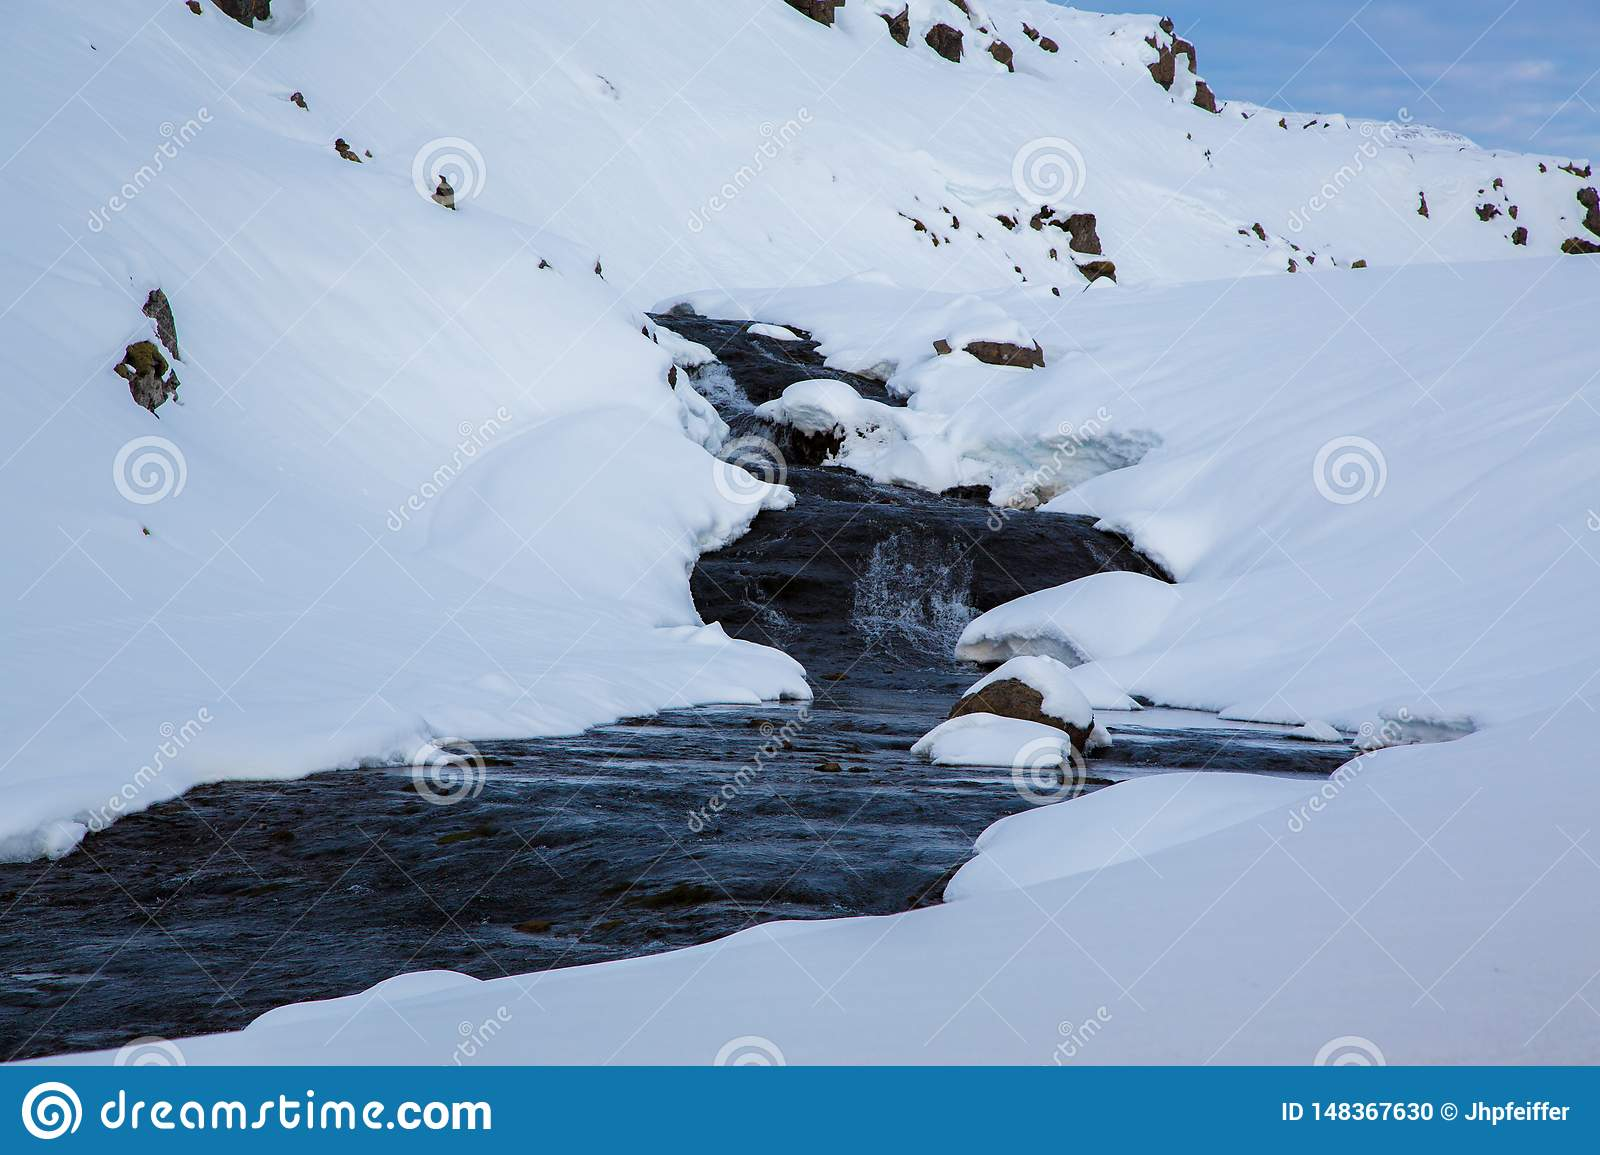 Brook in the snow in the highlands of Iceland